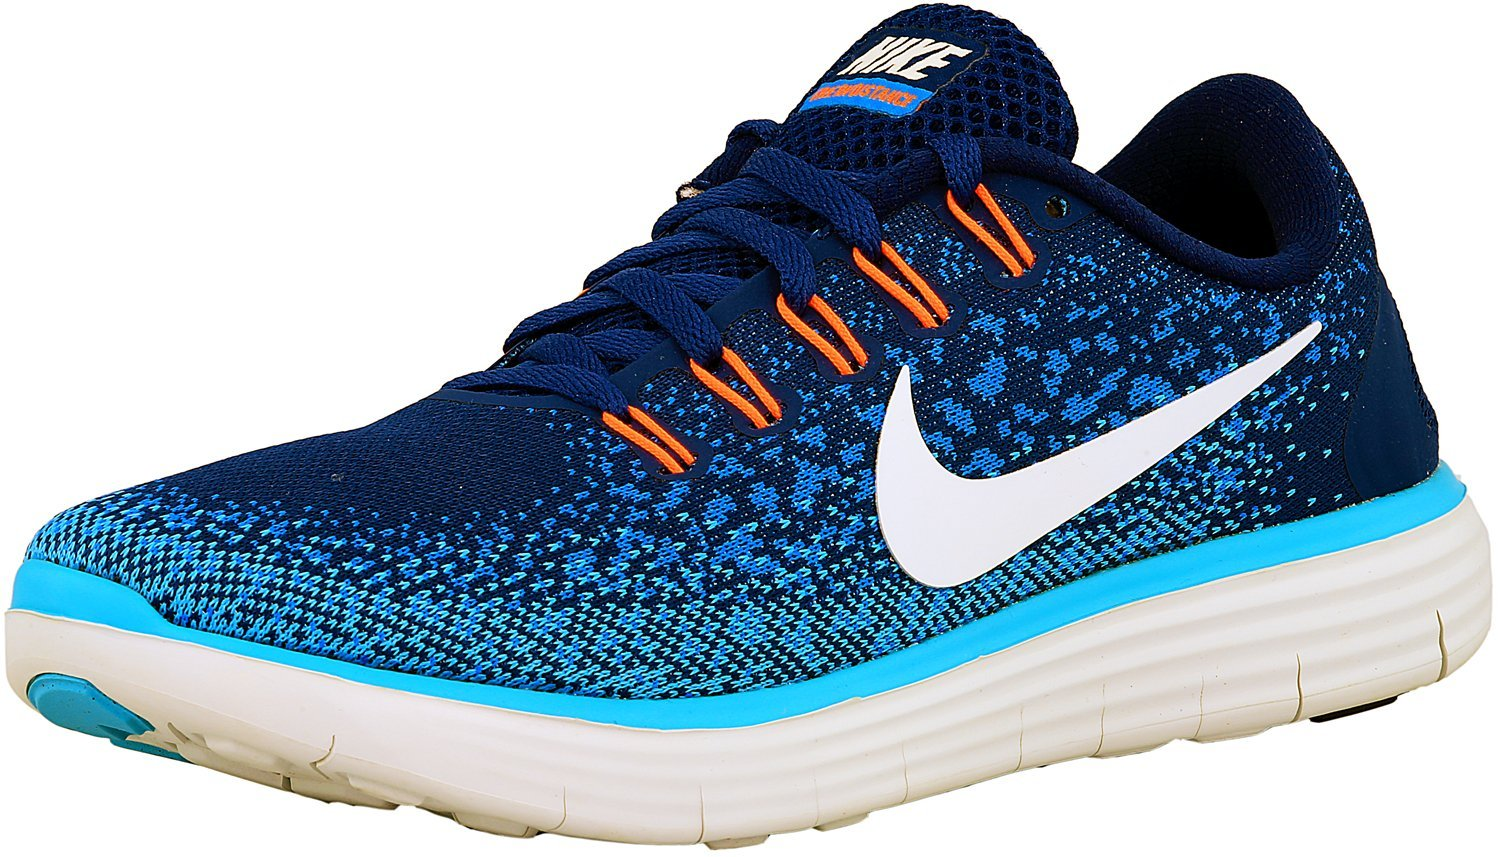 NIKE Womens Free Rn Distance Running Shoe B01HGFXC4M 6.5 B(M) US|COASTAL BLUE/OFF WHITE-HERITAGE CYAN